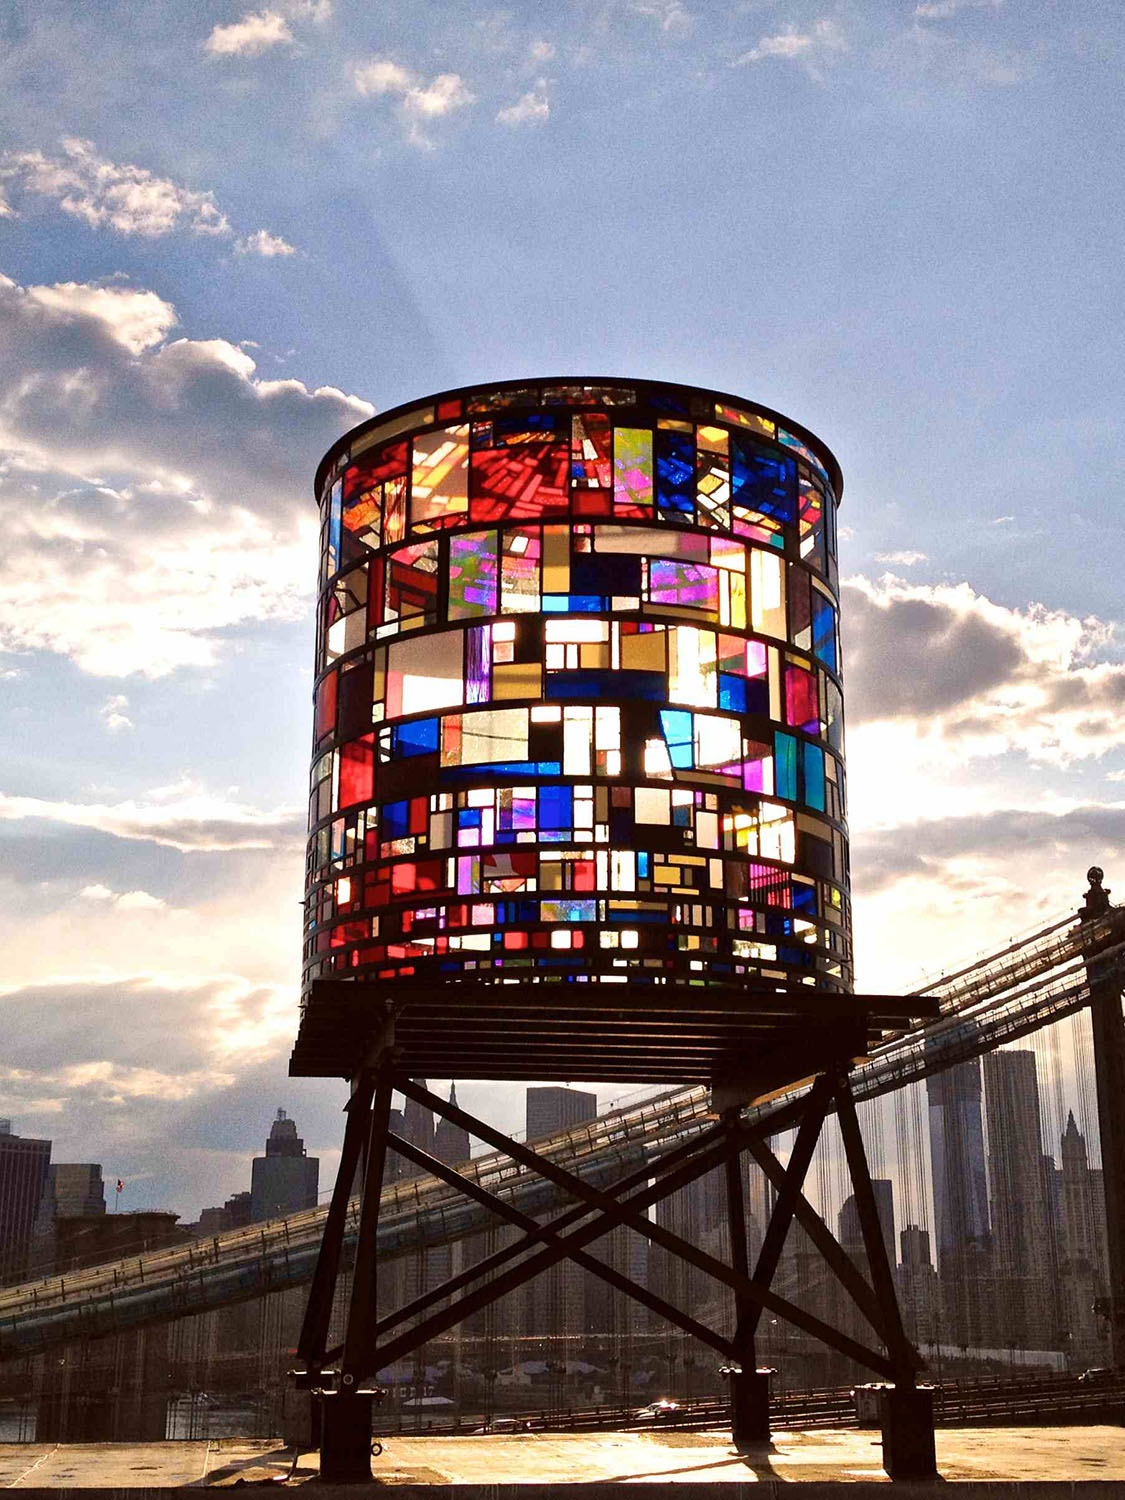 Tom Fruin's New York Watertower - Made of 1000 scrap plexiglass pieces